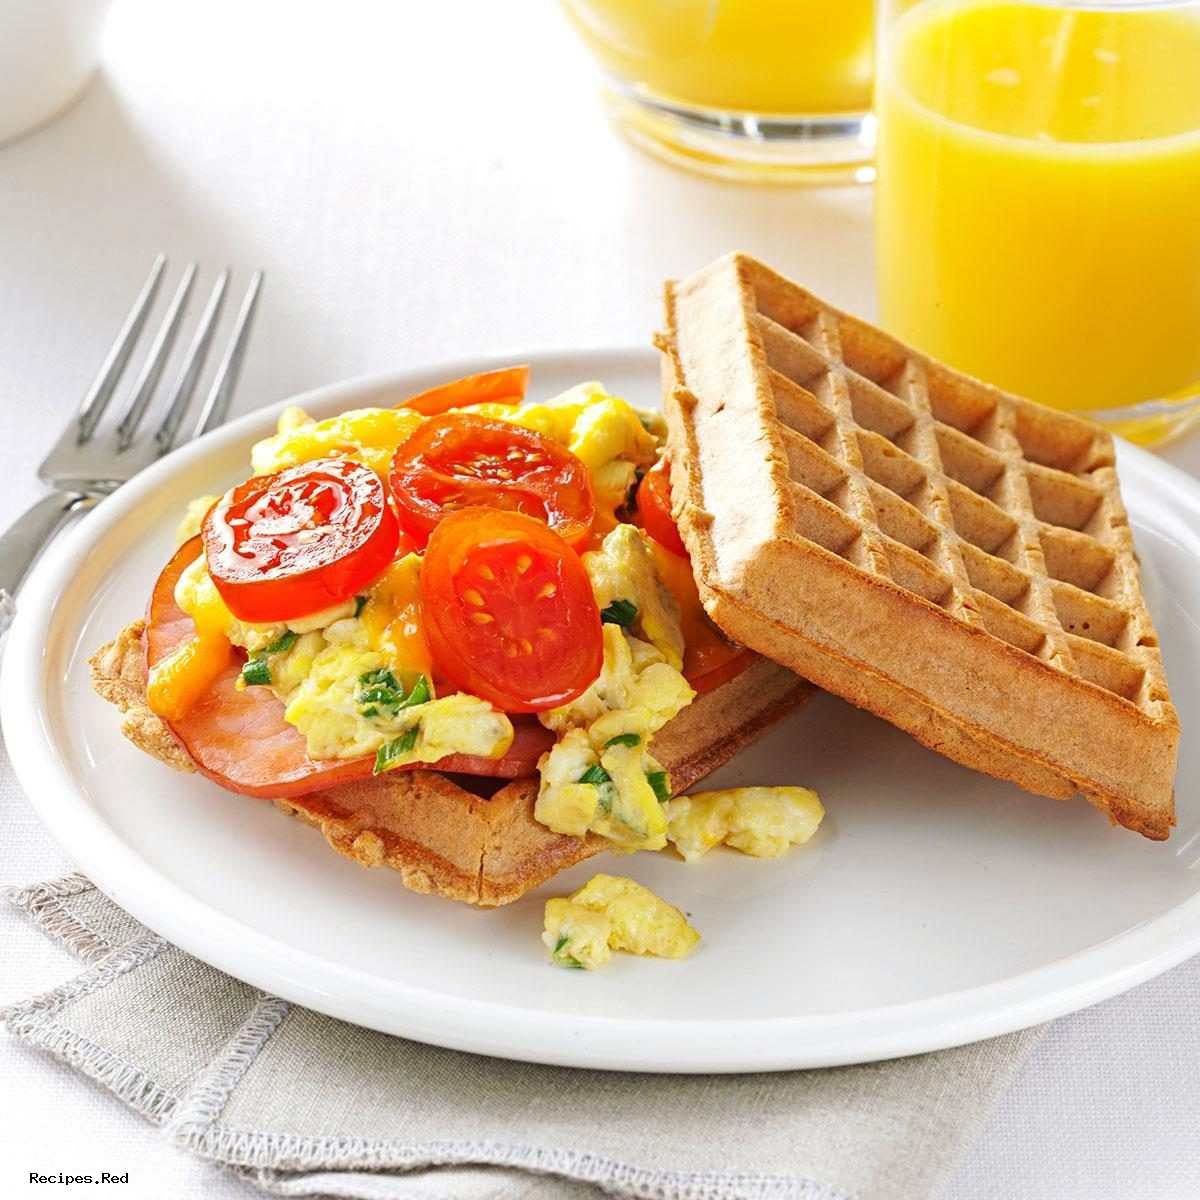 Waffle Sandwich : Dishes & Beverages, Sandwiches & Wraps, Breakfast Sandwiches, Easy Breakfast Ideas